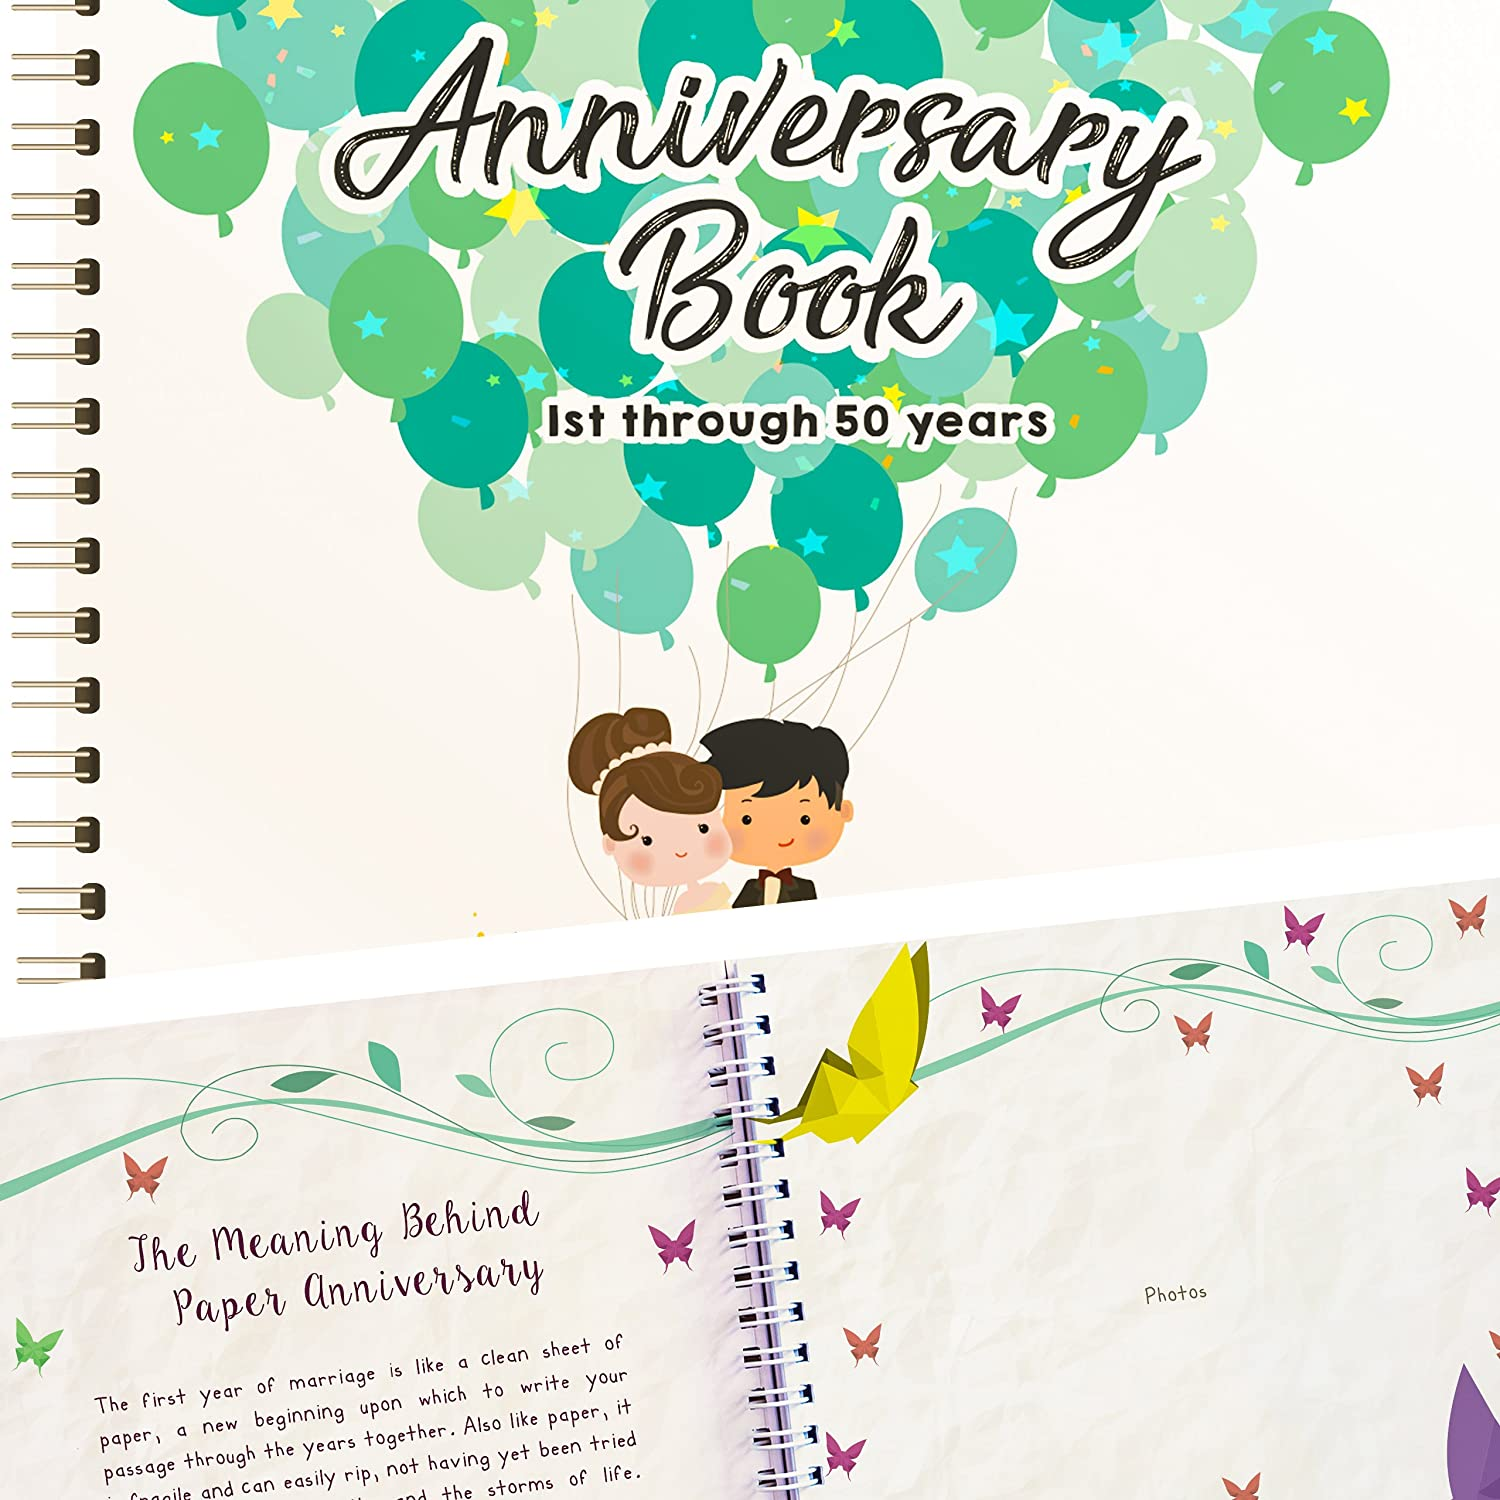 Wedding Anniversary Book - A Hardcover Journal To Document Wedding Anniversaries From The 1st To 50th Year! Unique Couple Gifts For Him & Her - Personalized Marriage Presents For Husband & Wife! Unconditional Rosie ANNIVERSARYBOOKA